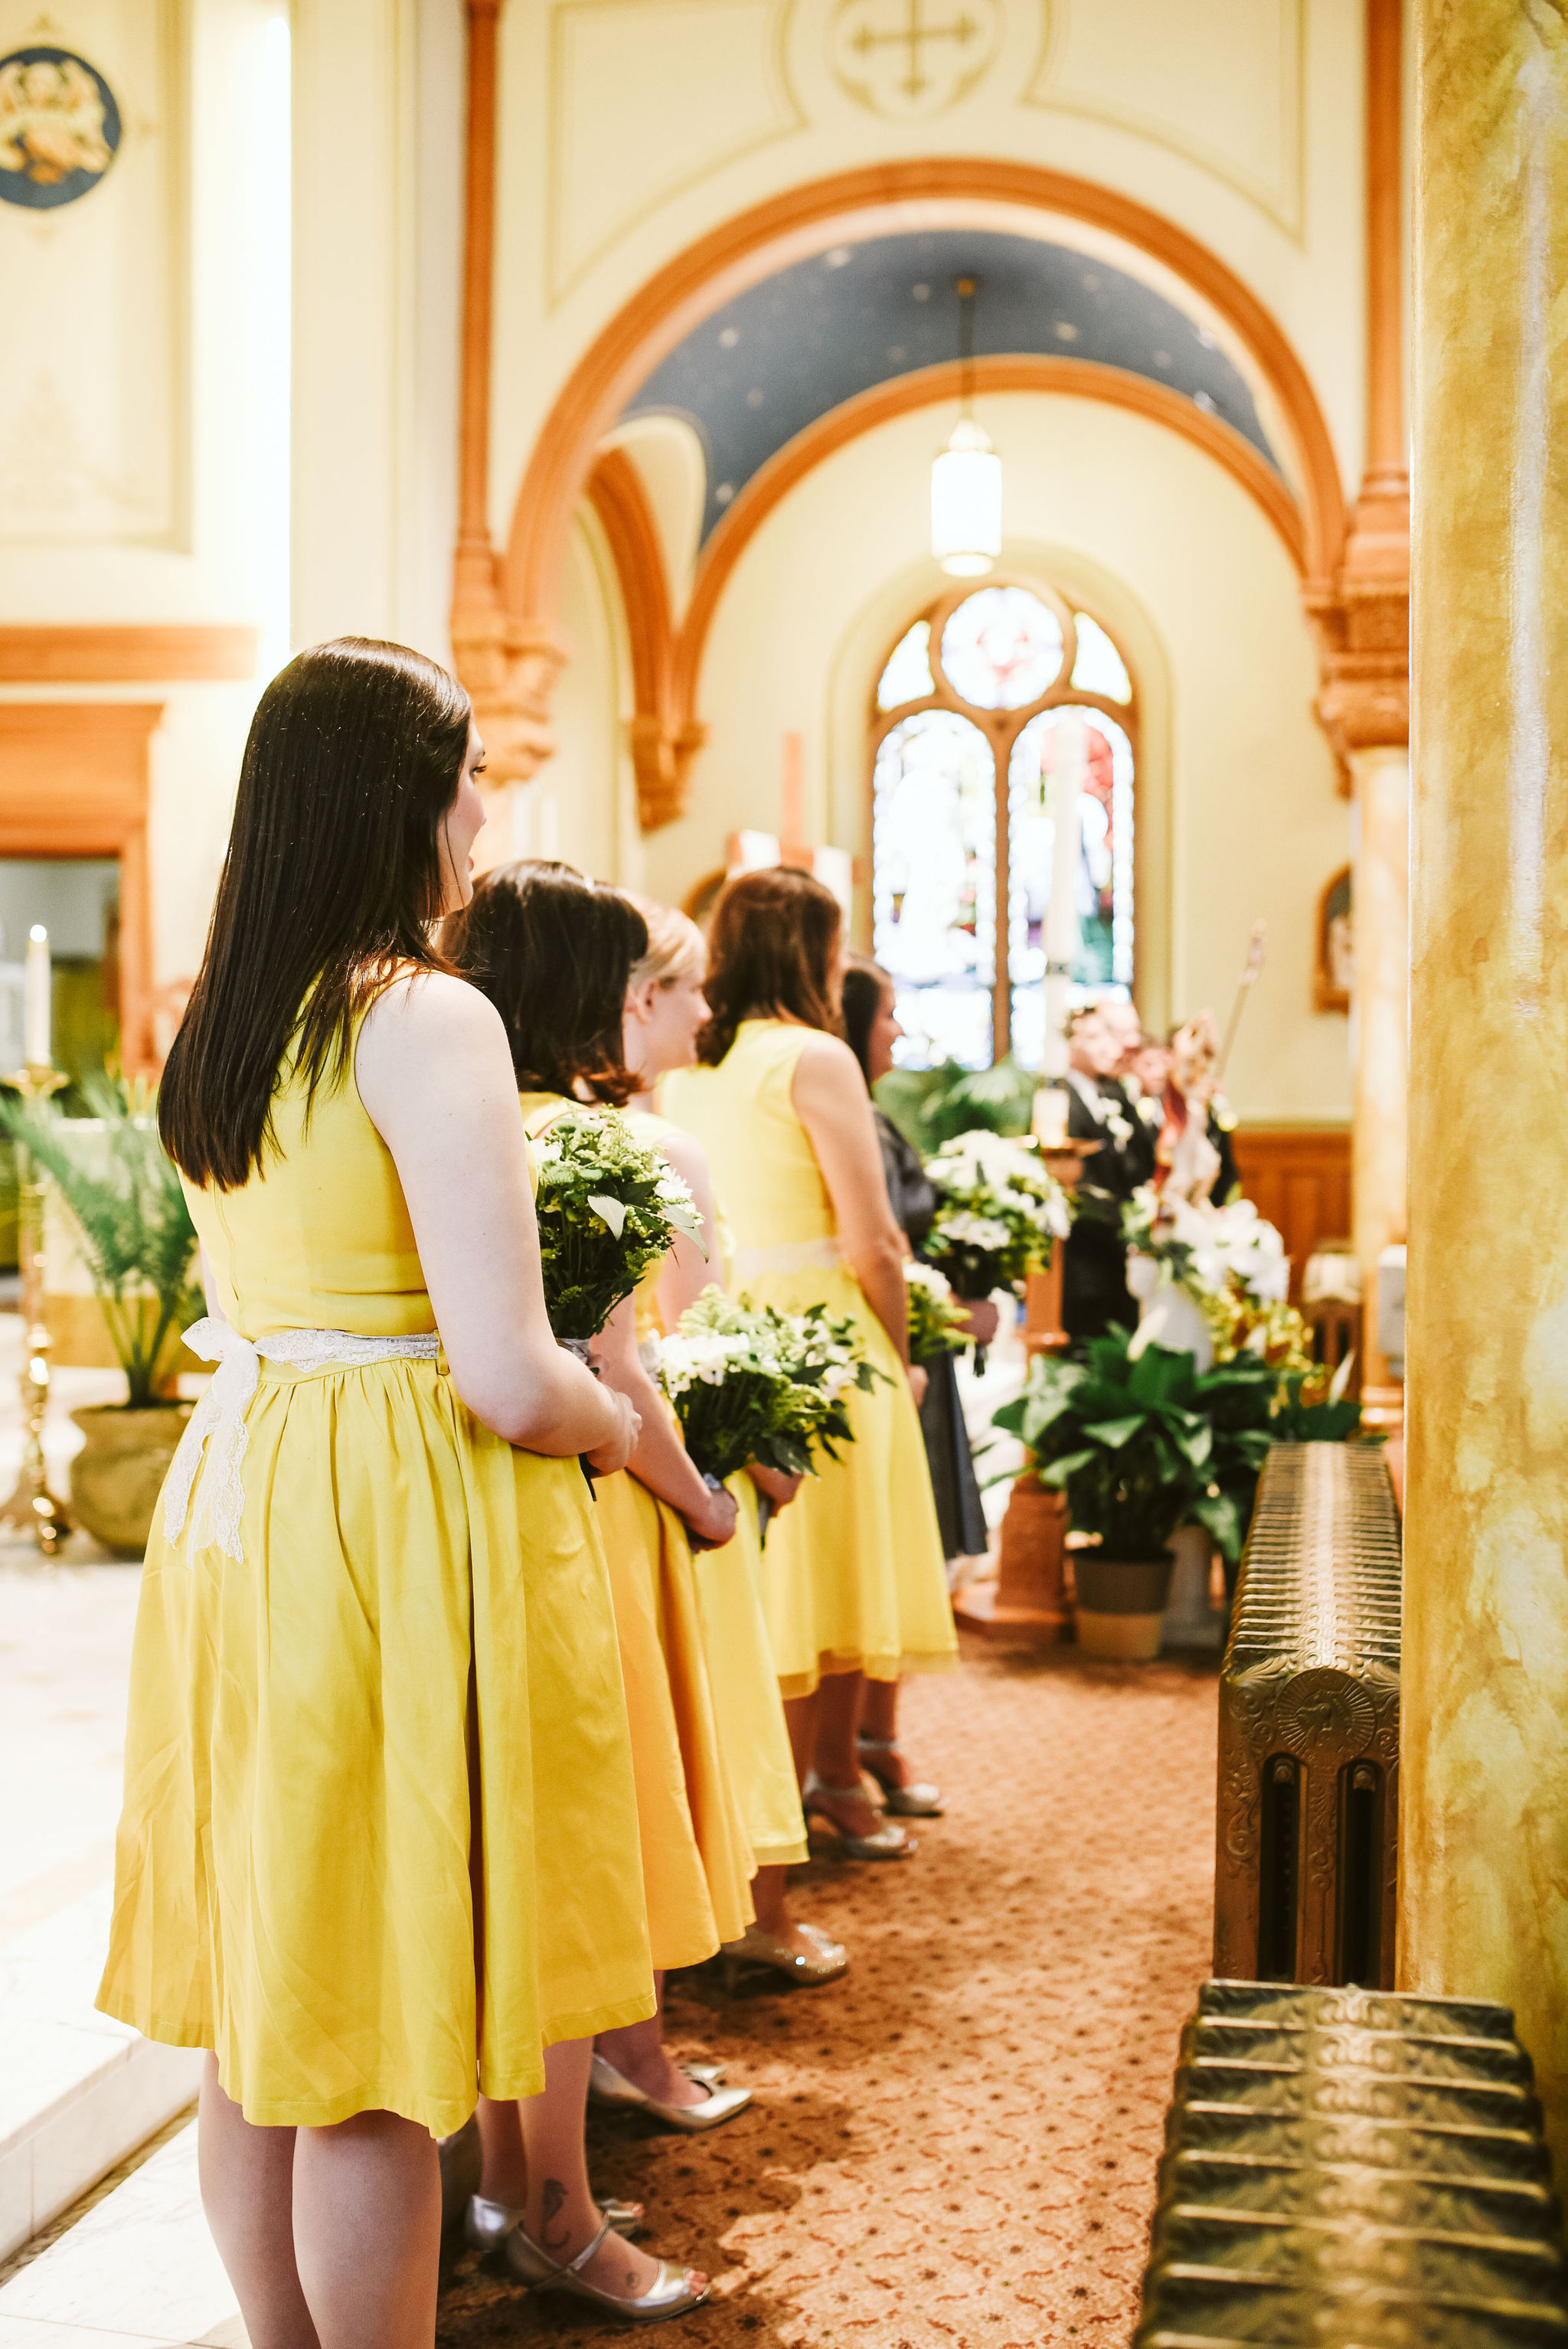 Baltimore, Church Wedding, Maryland Wedding Photographer, Vintage, Classic, Bridesmaids Standing during Ceremony, Yellow Bridesmaids Dresses